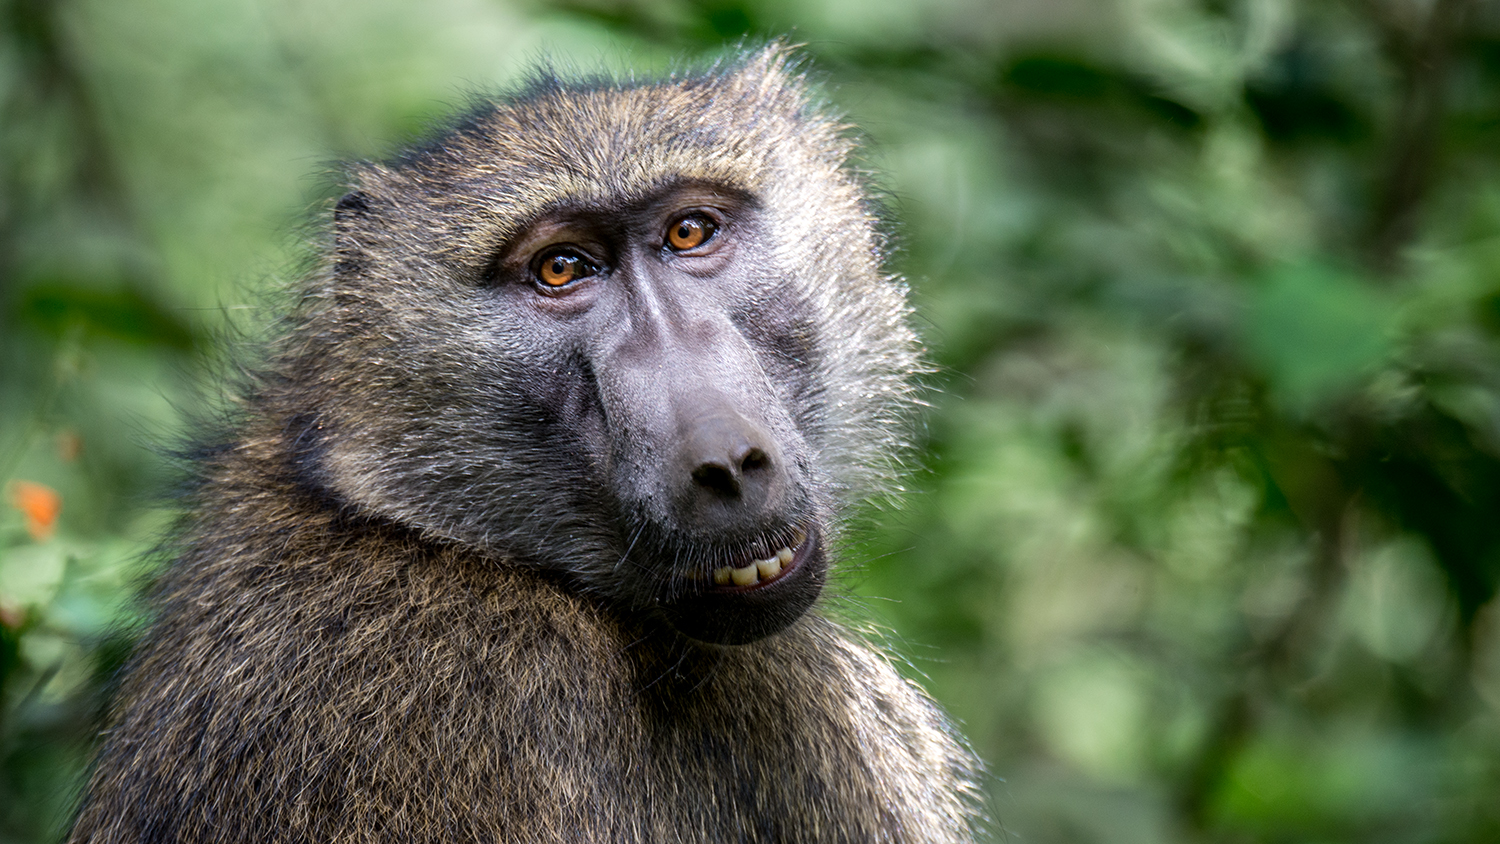 I love the big orange eyes and the smile on this baboon!